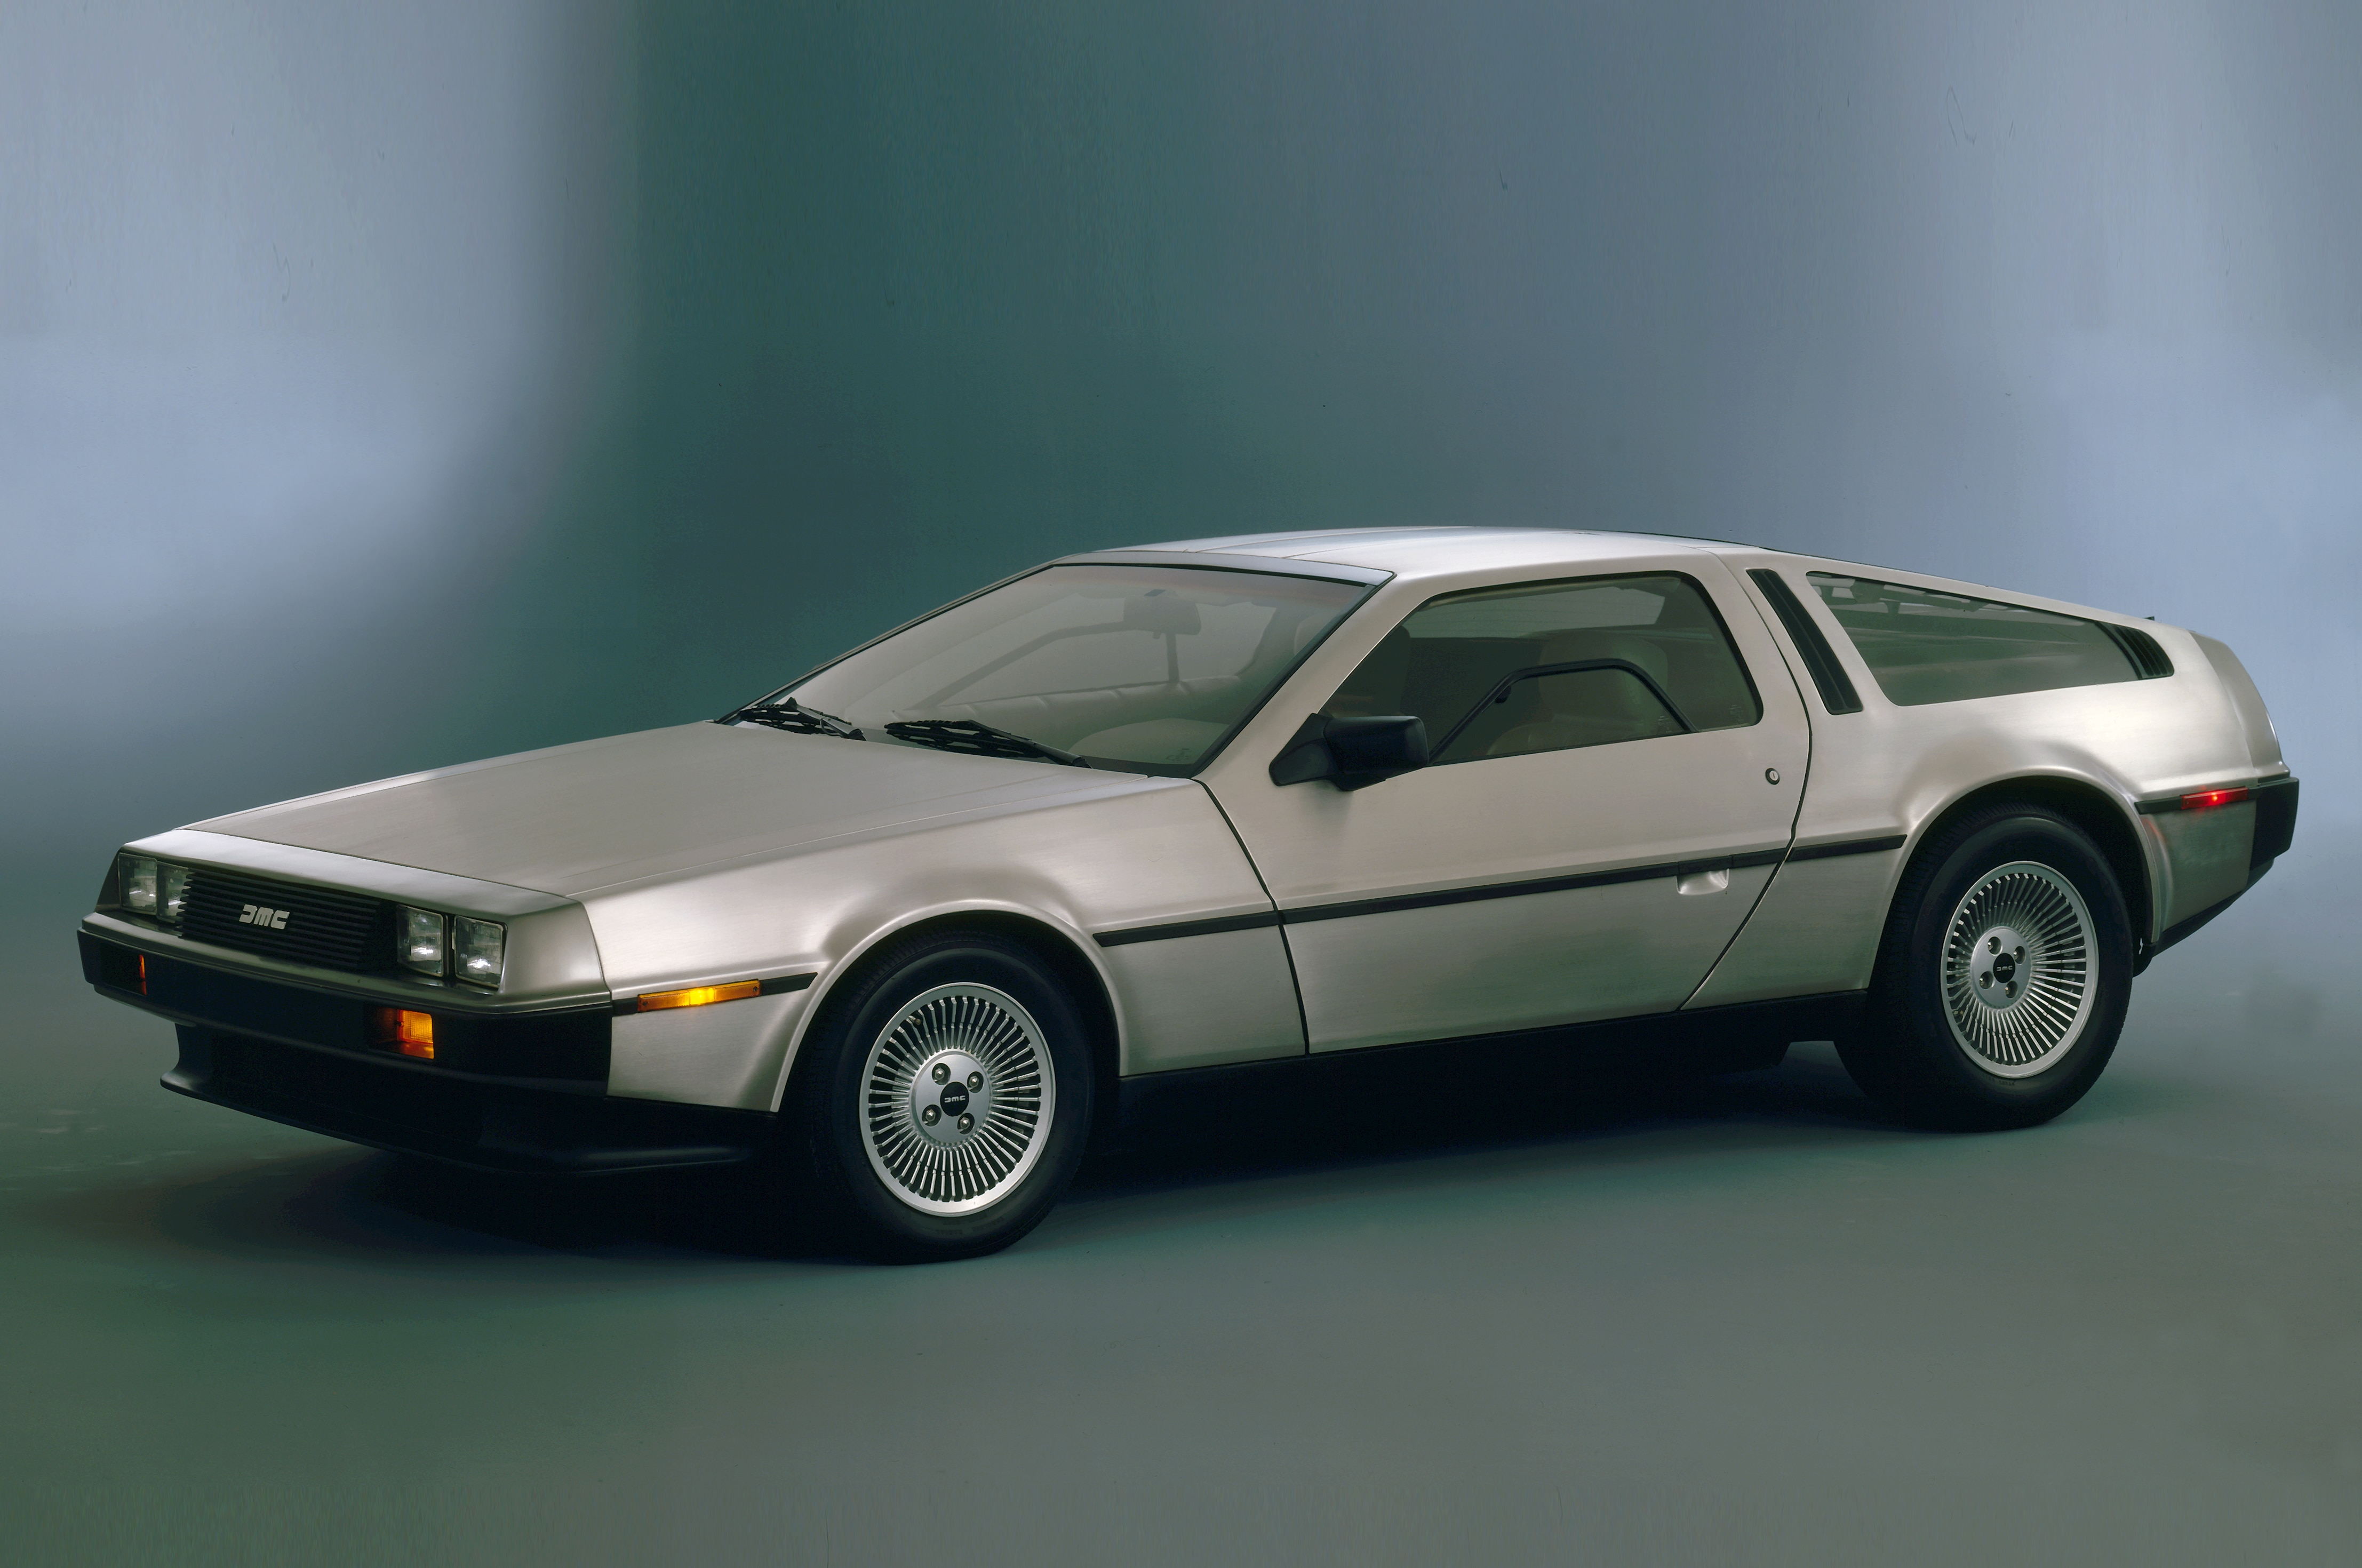 delorean to restart production as soon as 2017 aiming for 350 400 hp. Black Bedroom Furniture Sets. Home Design Ideas